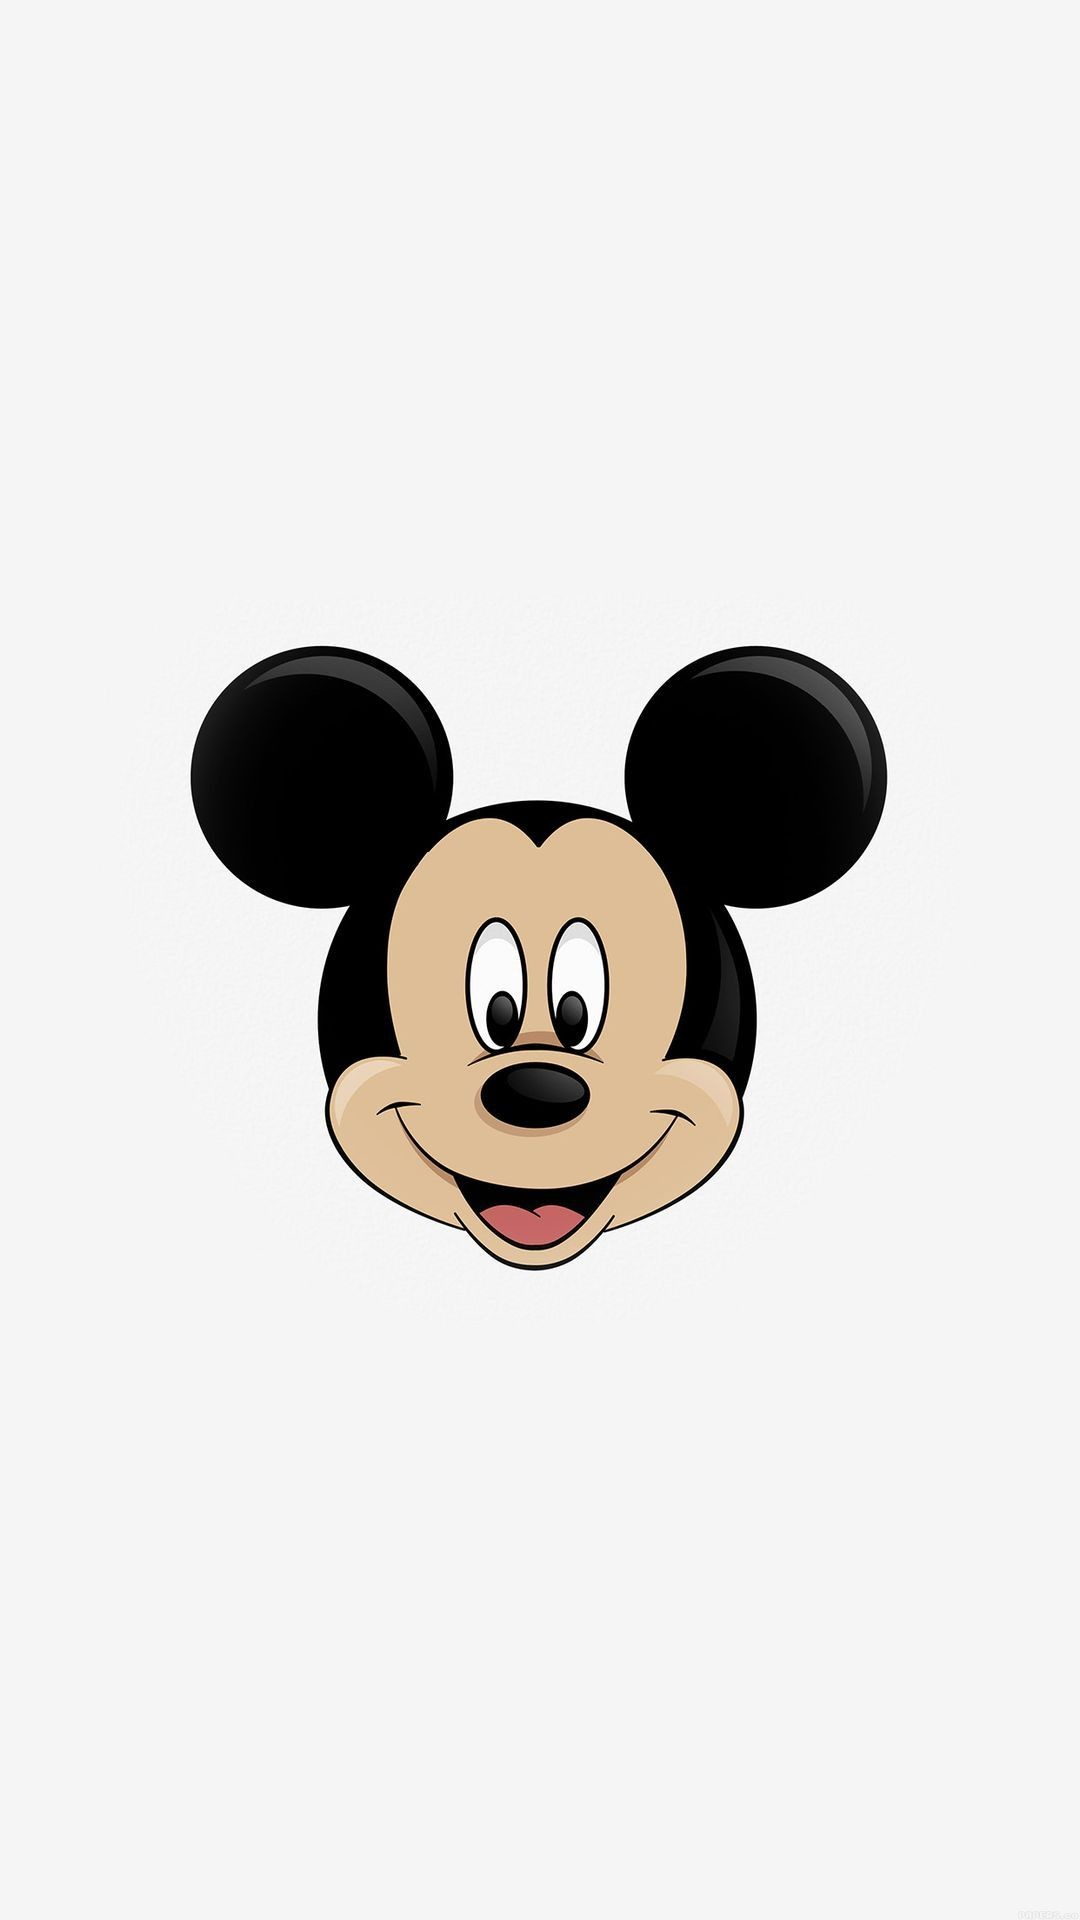 Res: 1080x1920, Download Mickey Mouse Disney iPhone Wallpapers. Tap to see more iPhone  backgrounds - @mobile9 - Disney Childhood Memories Cartoons